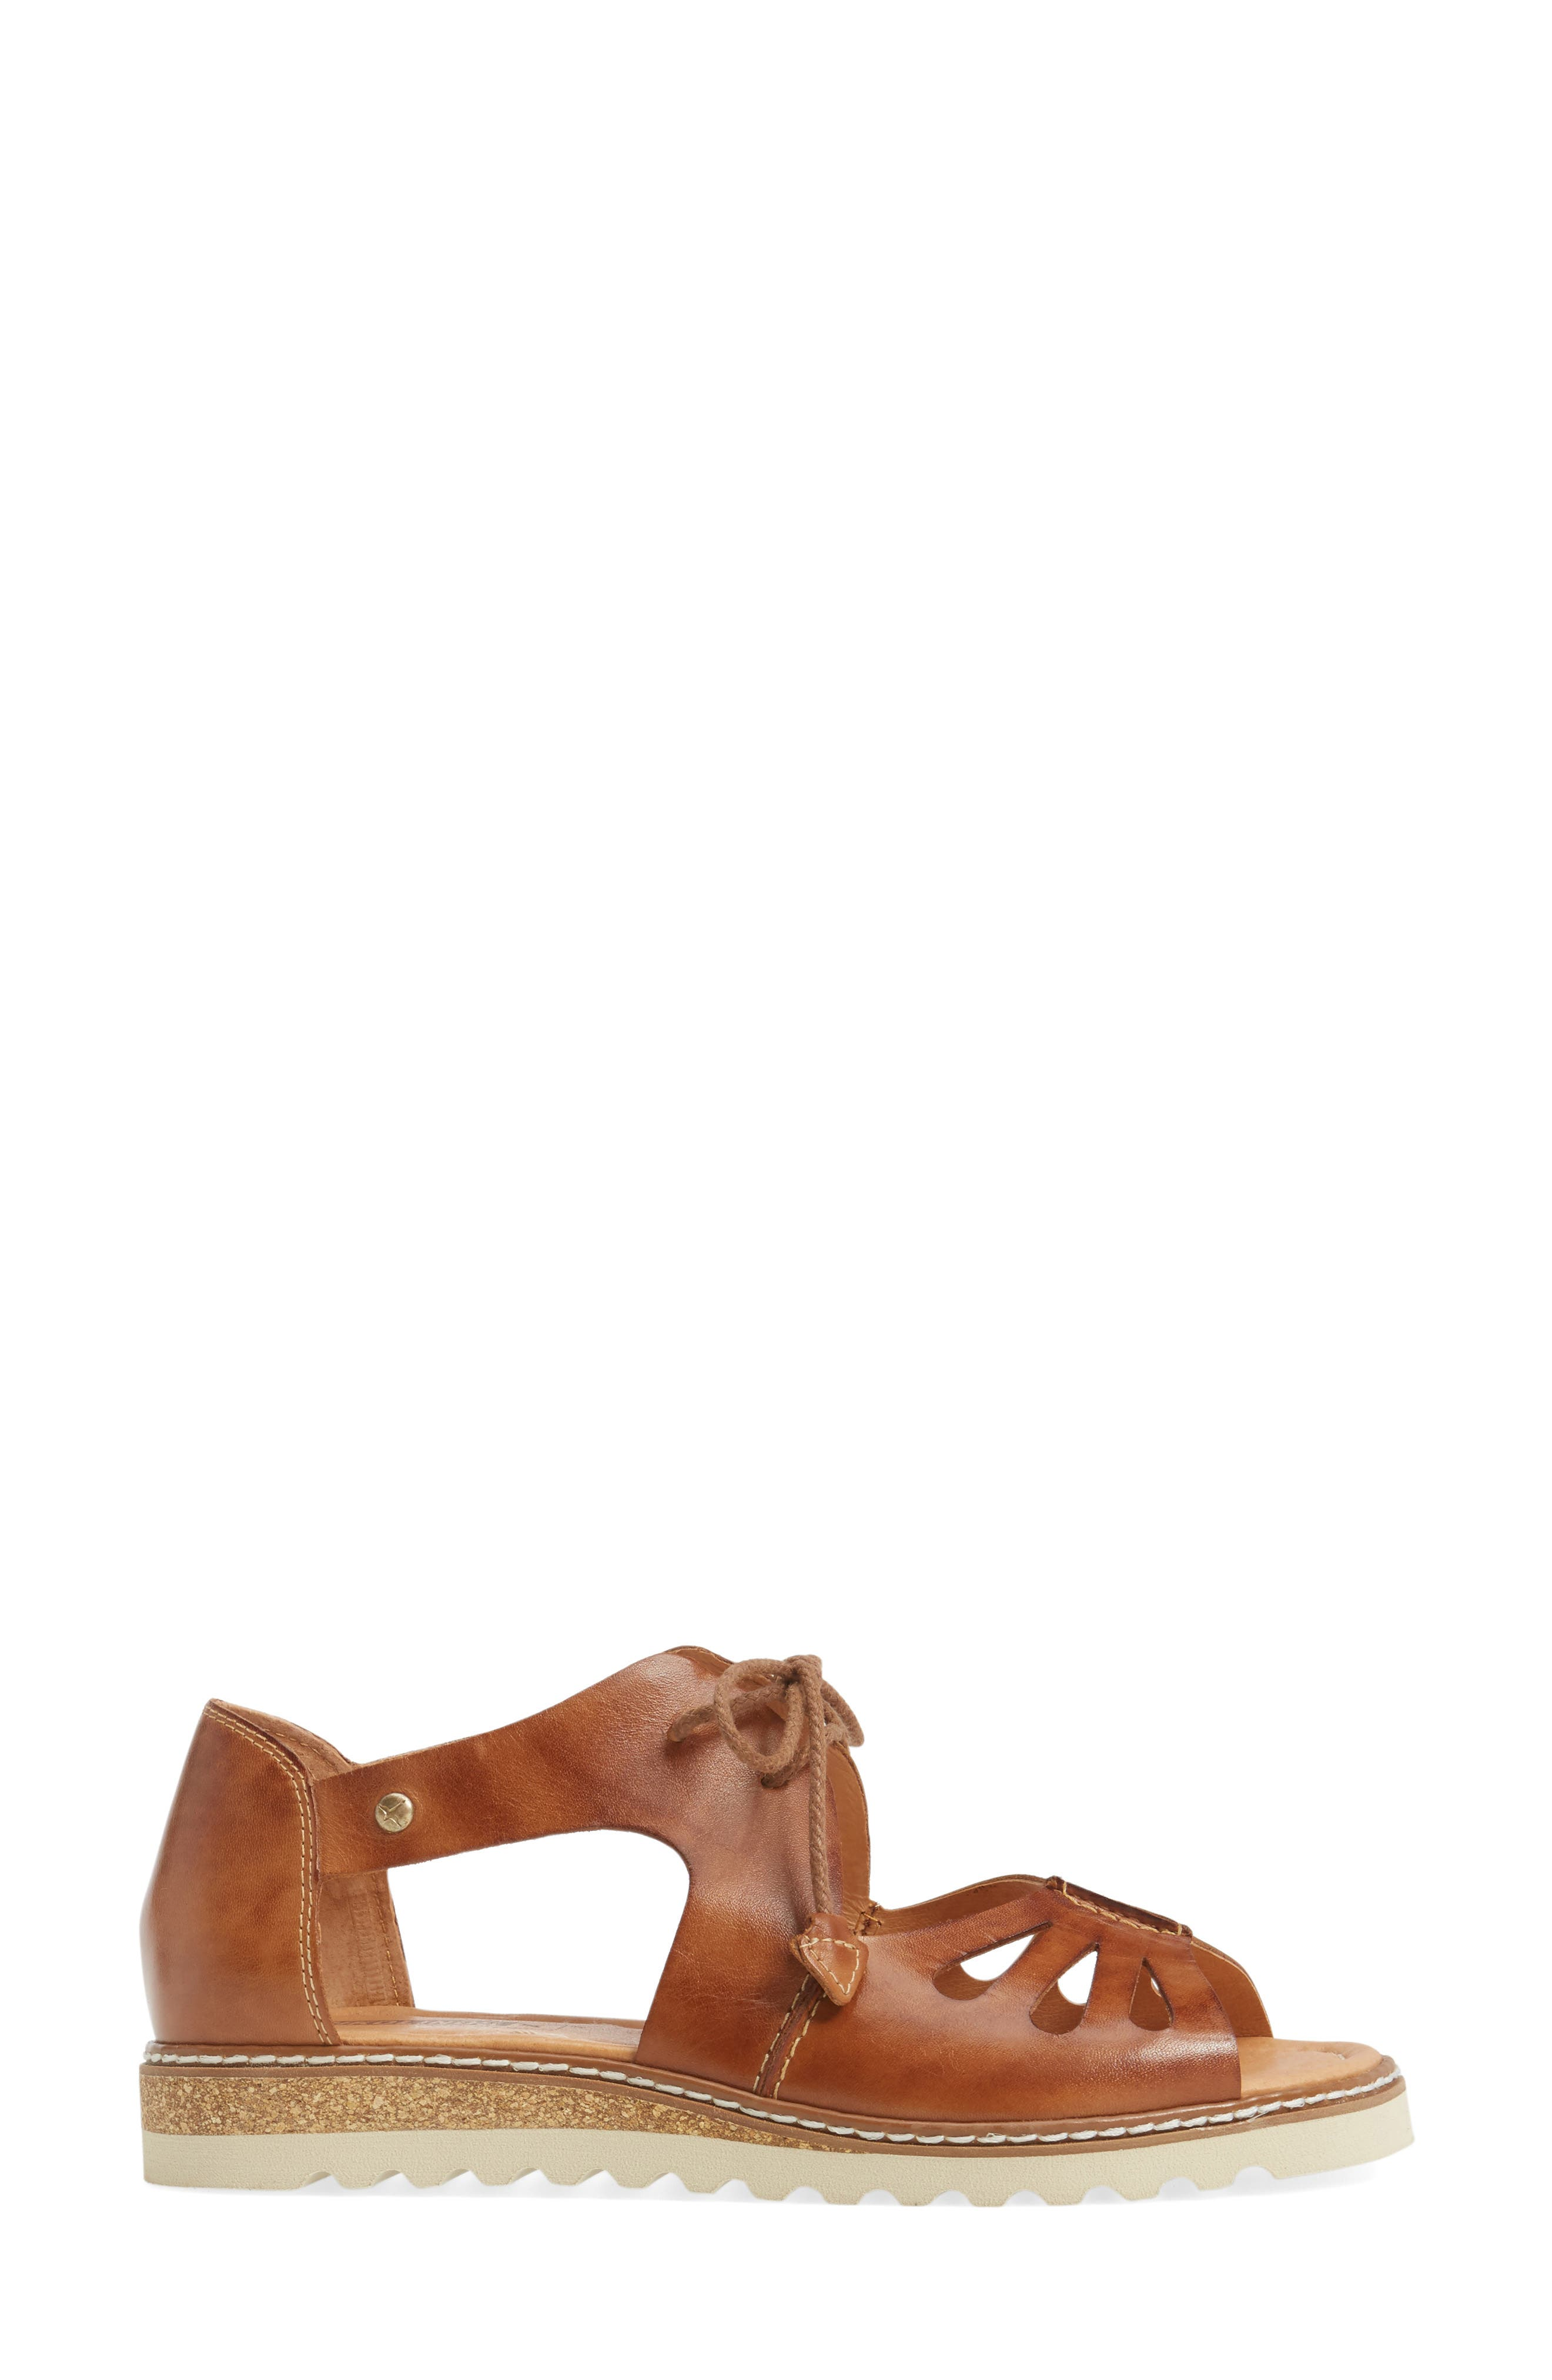 PIKOLINOS,                             Alcudia Lace-Up Sandal,                             Alternate thumbnail 3, color,                             BRANDY LEATHER